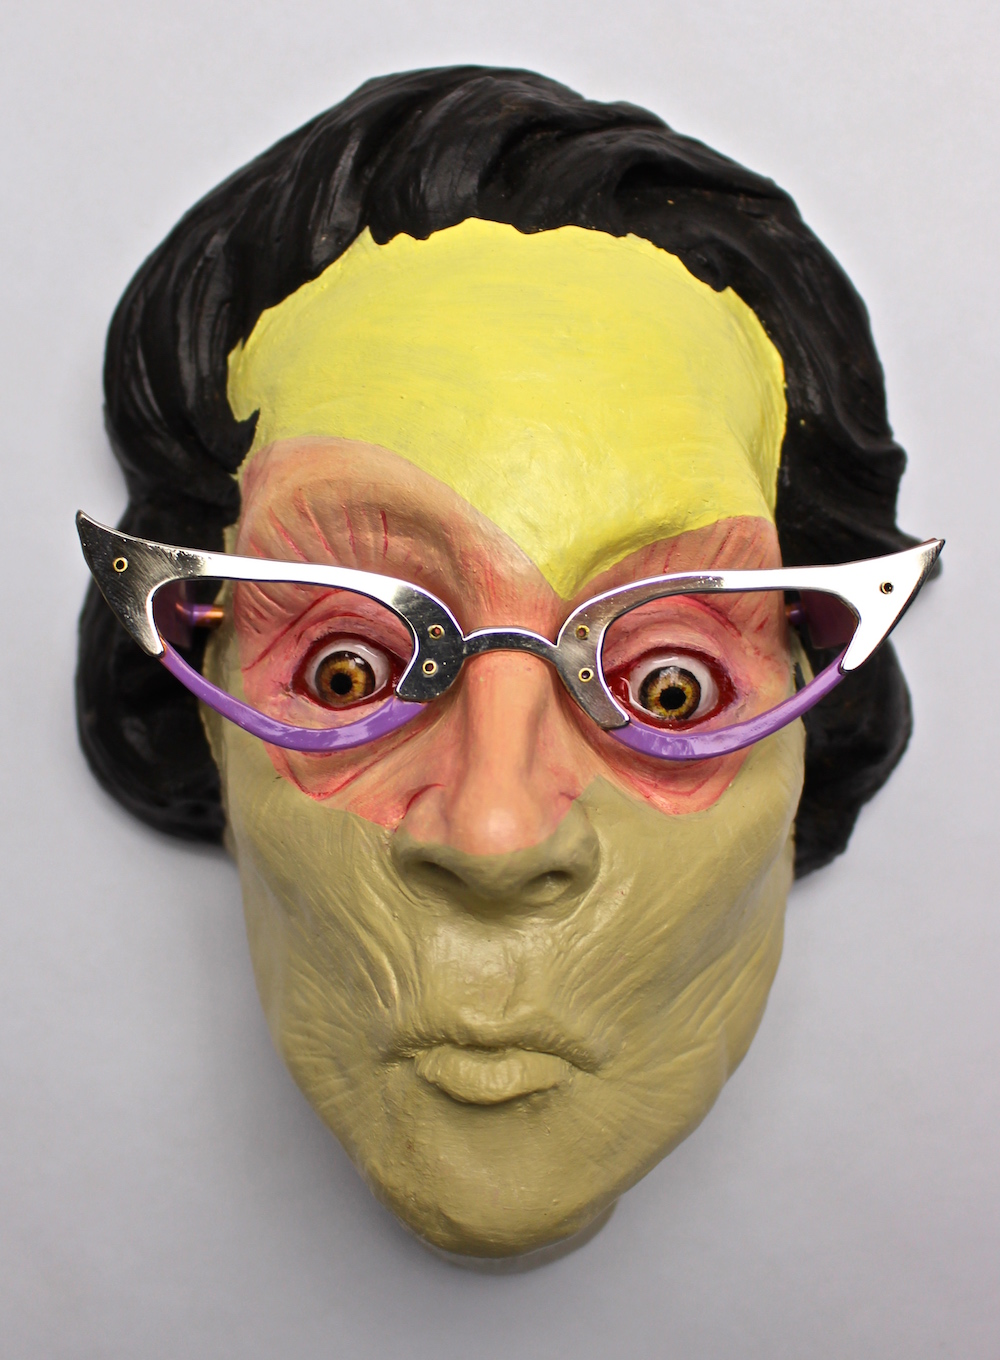 Luke Halling self-portrait mask with black hair and horn rimmed glasses